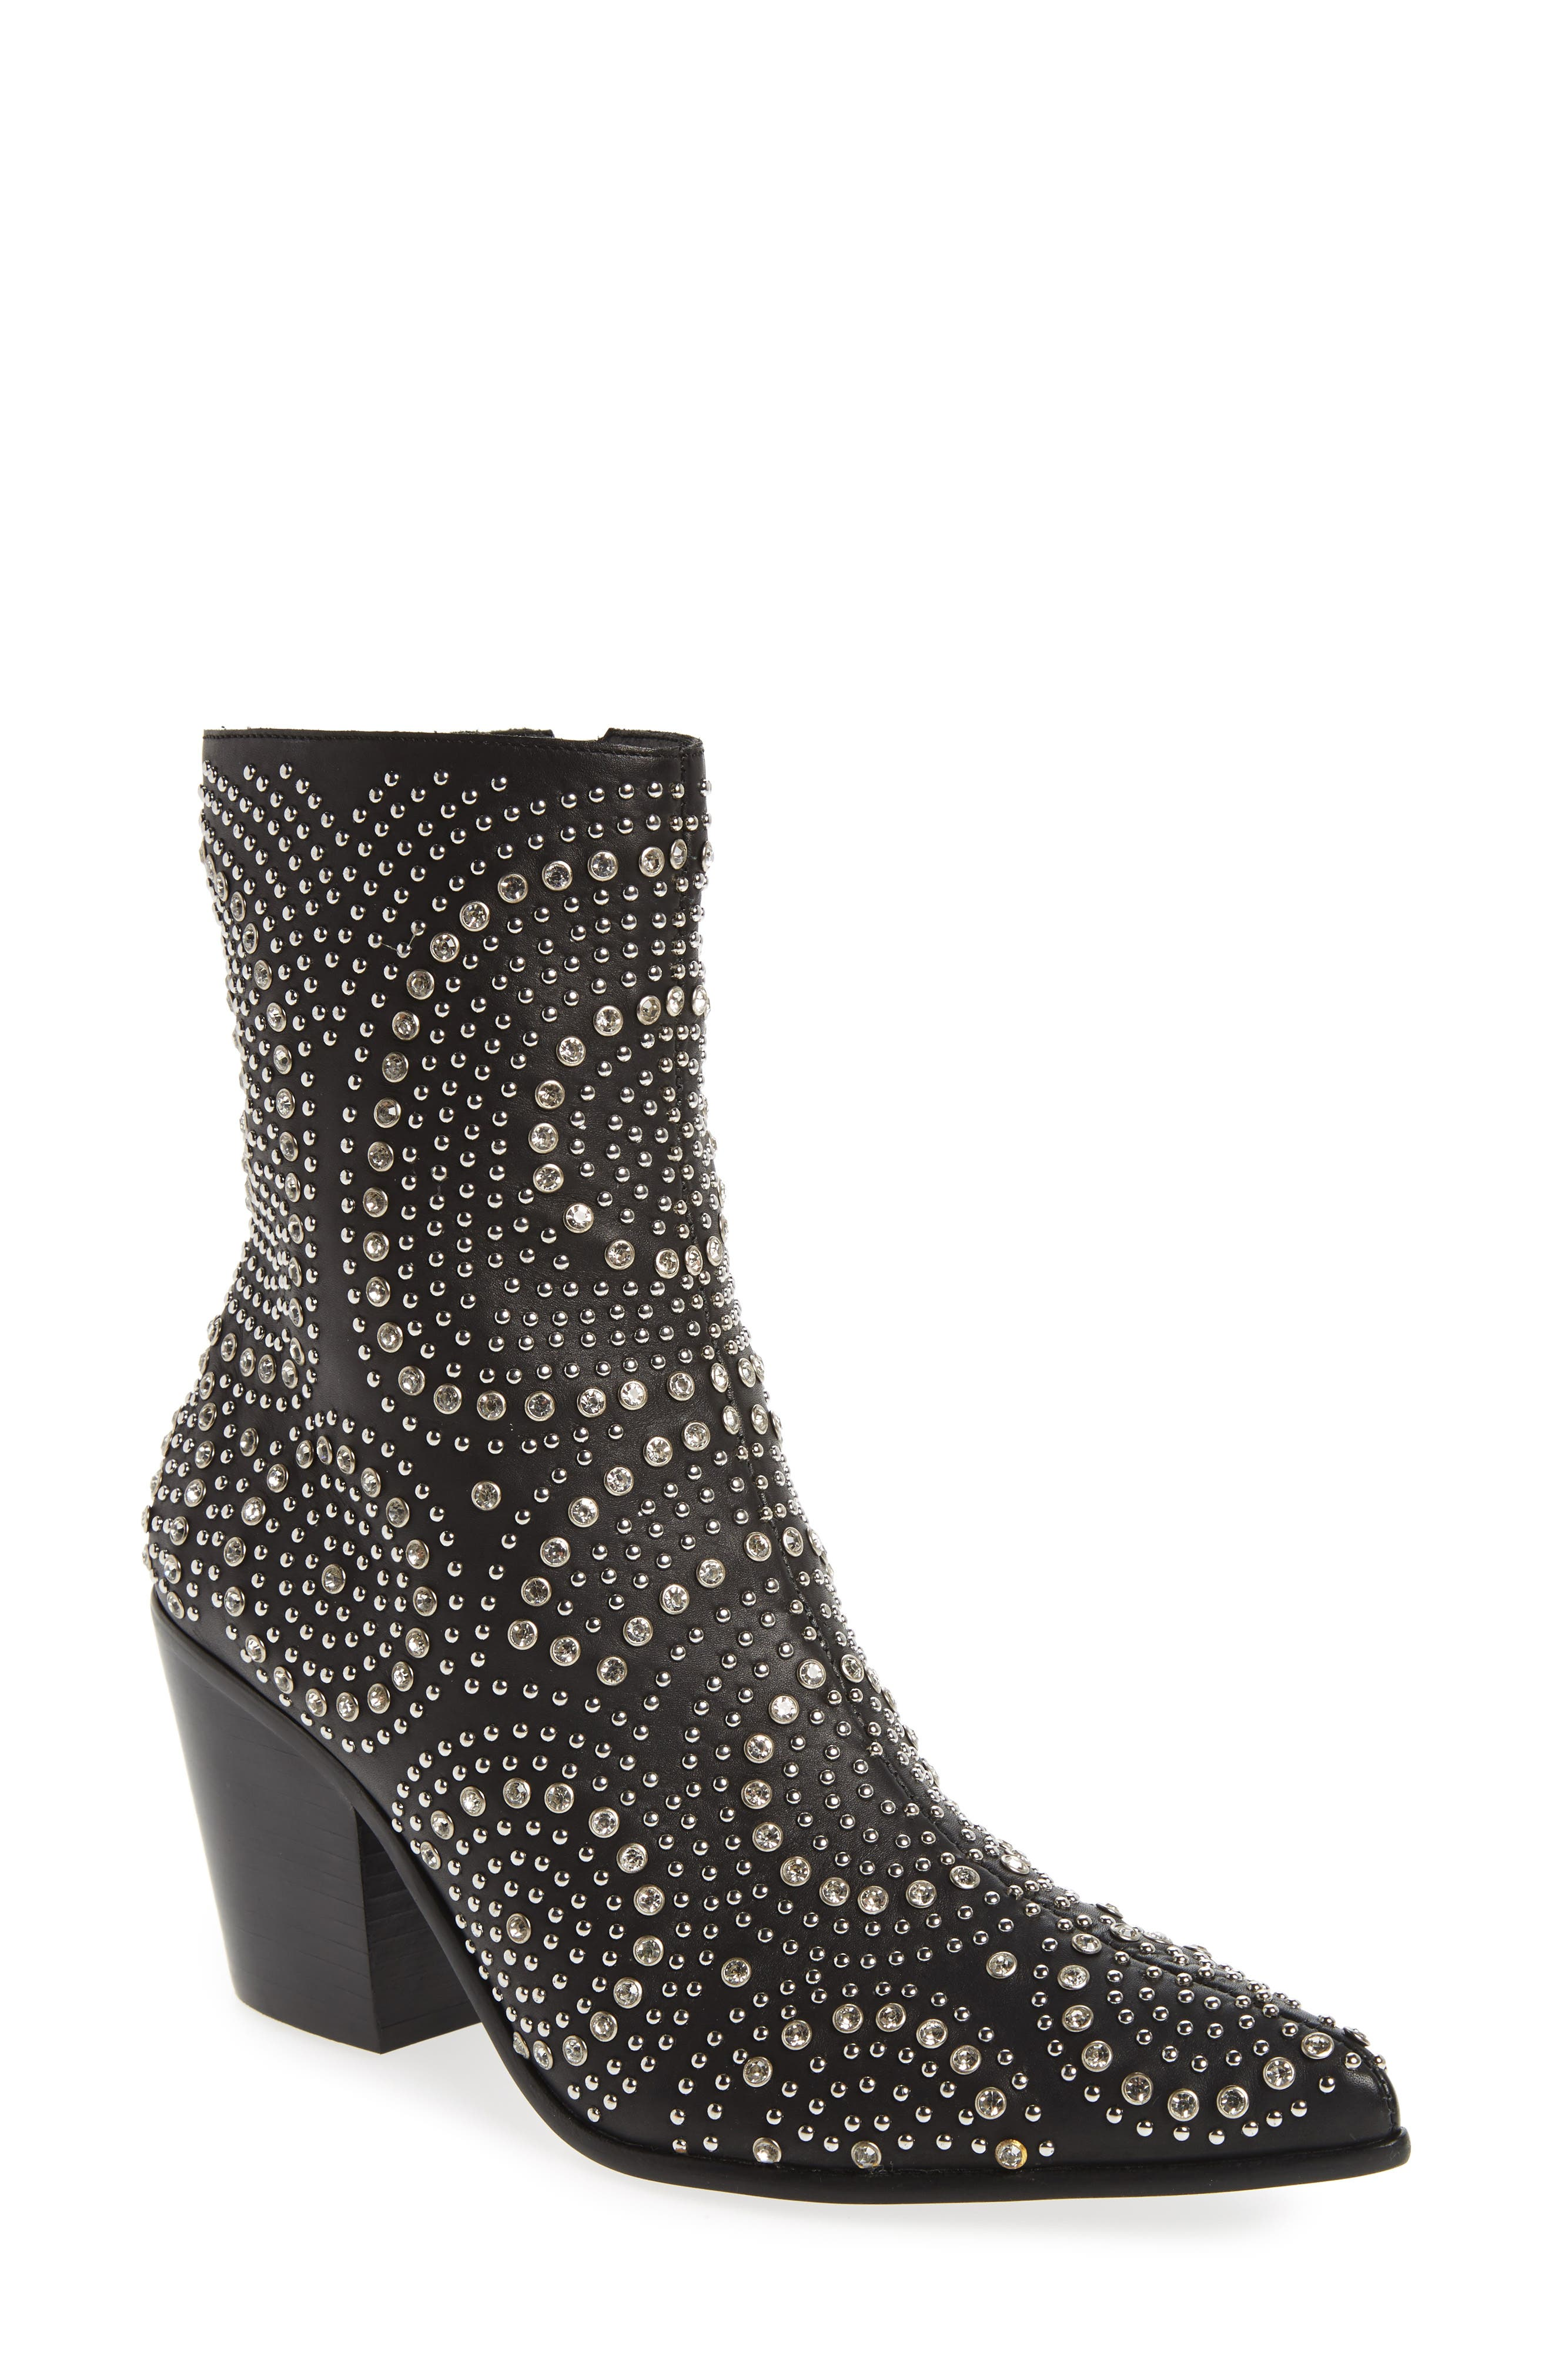 Alternate Image 1 Selected - Jeffrey Campbell ACE-SJ Embellished Bootie (Women)